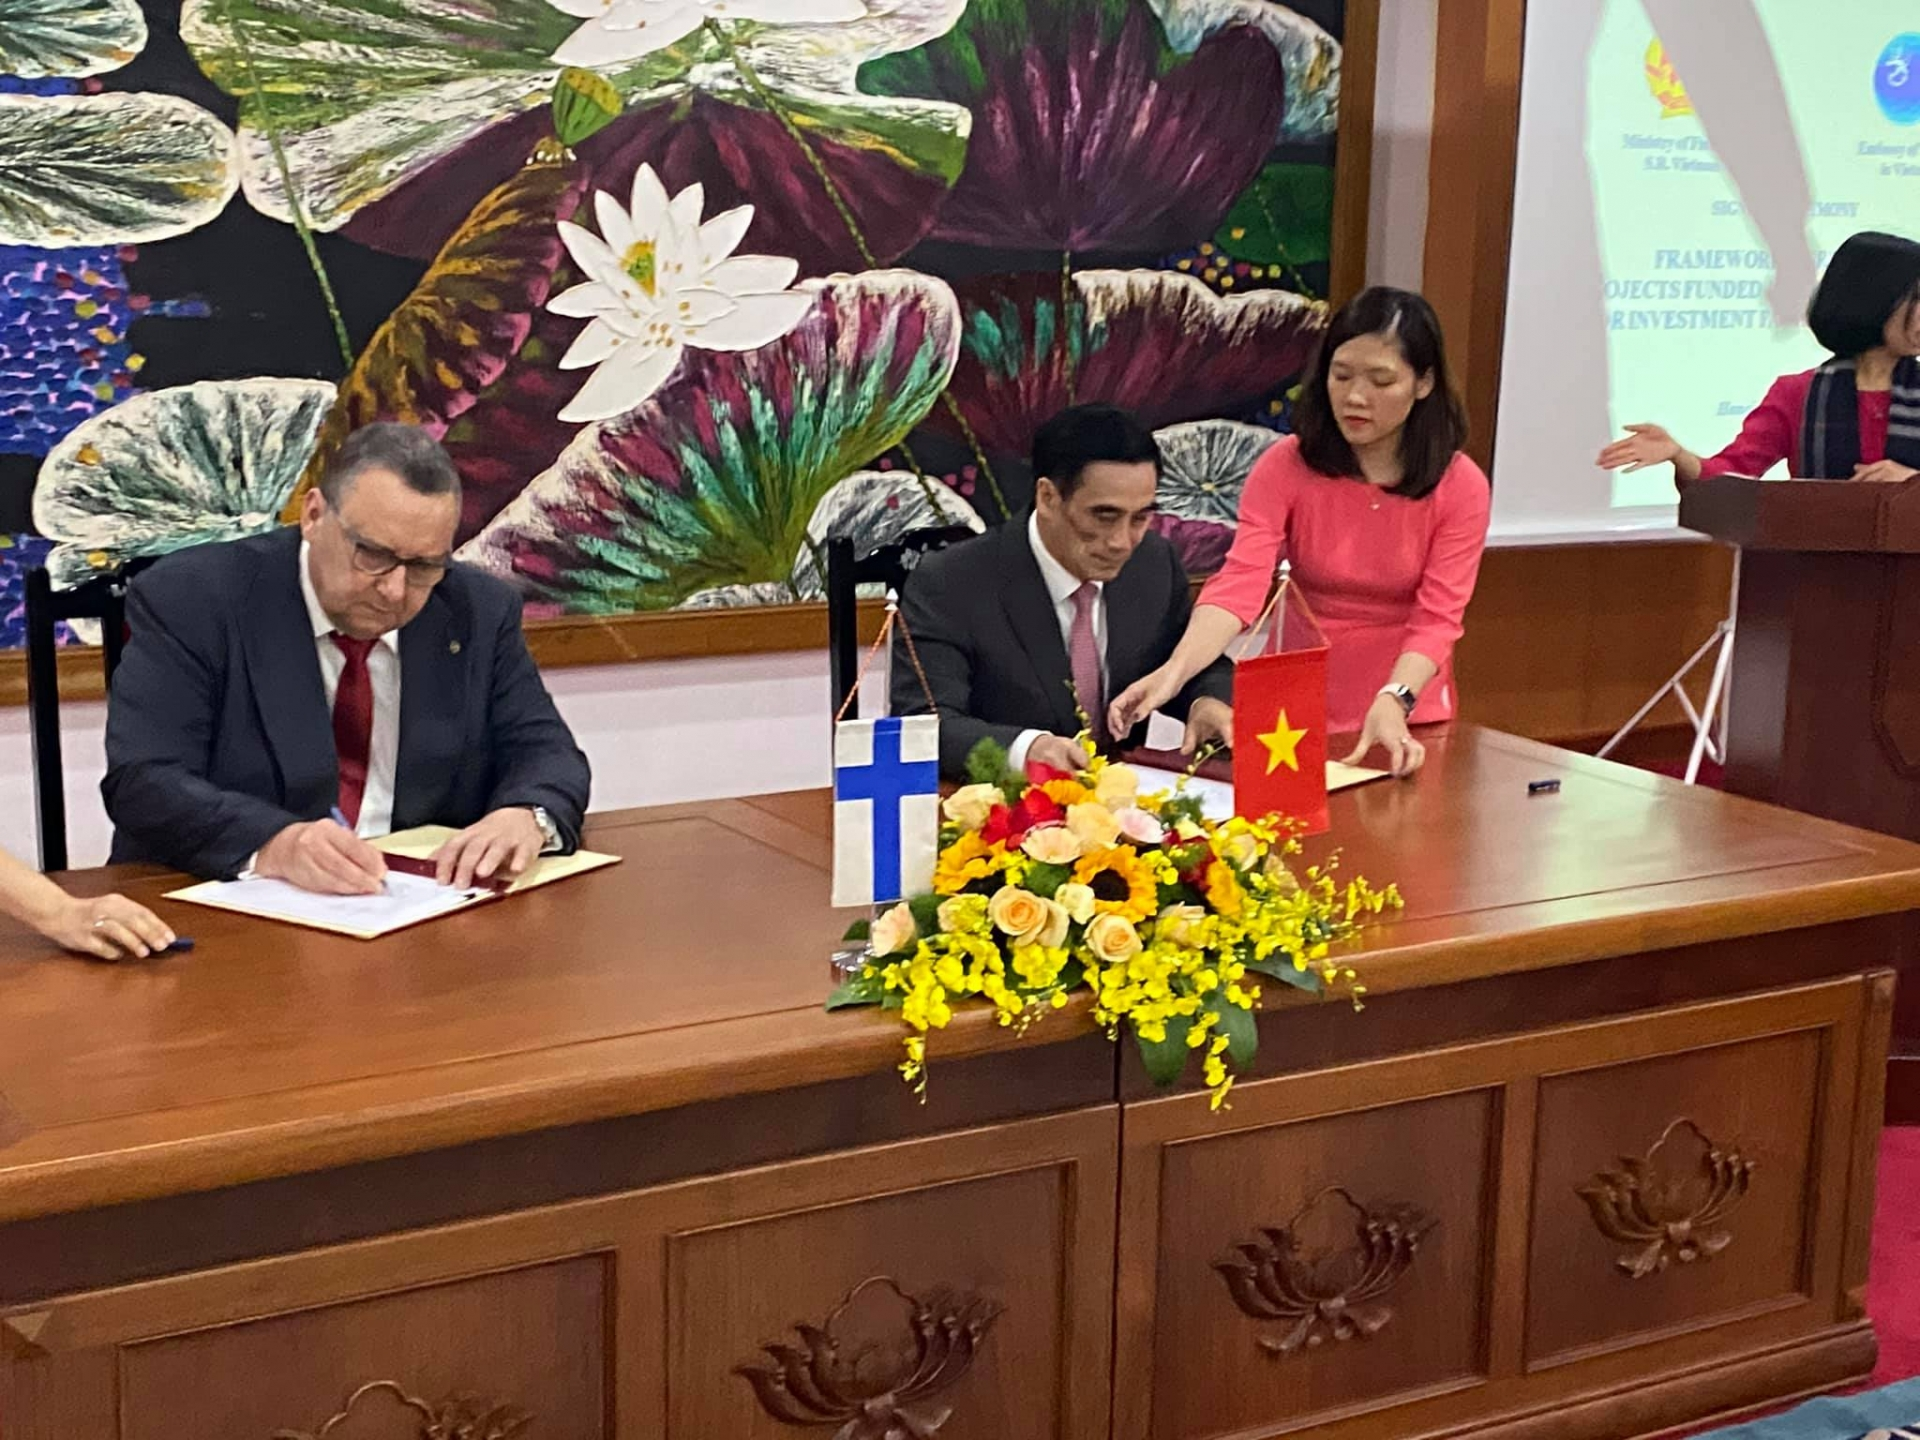 100 million USD provided by Finland for public sector investment in Vietnam